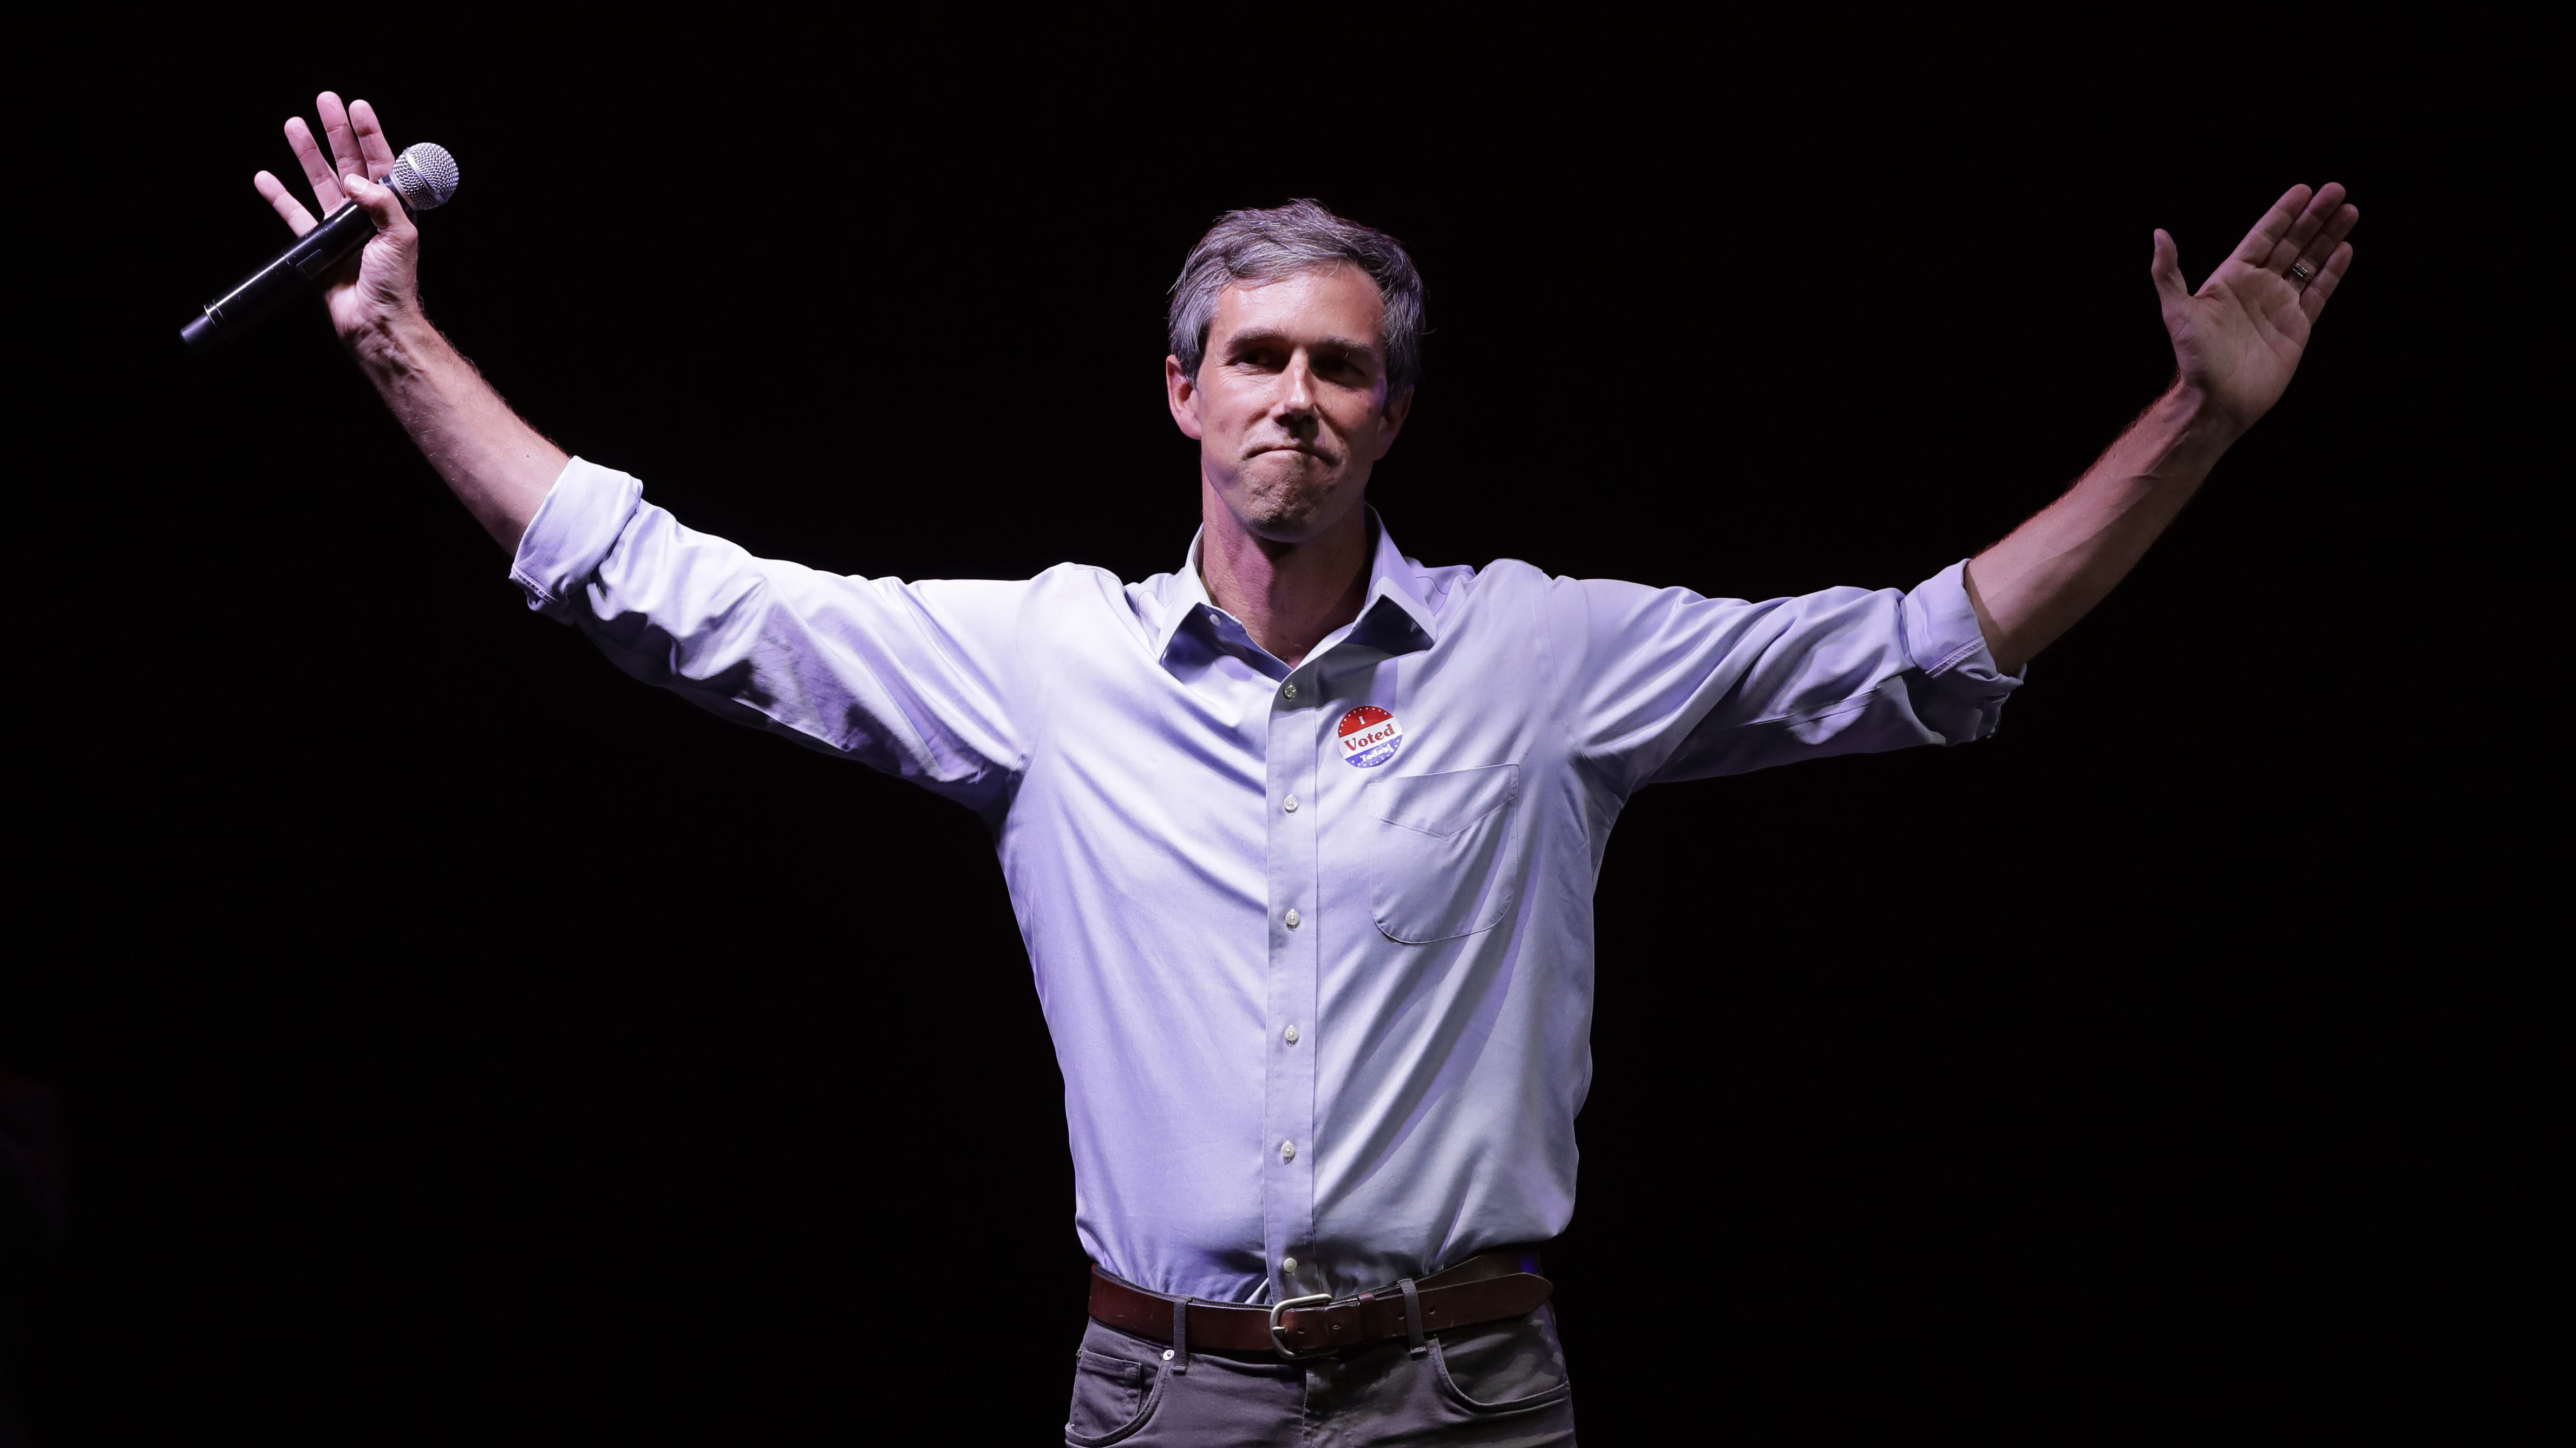 Democrat rising star O'Rourke announces 2020 White House bid